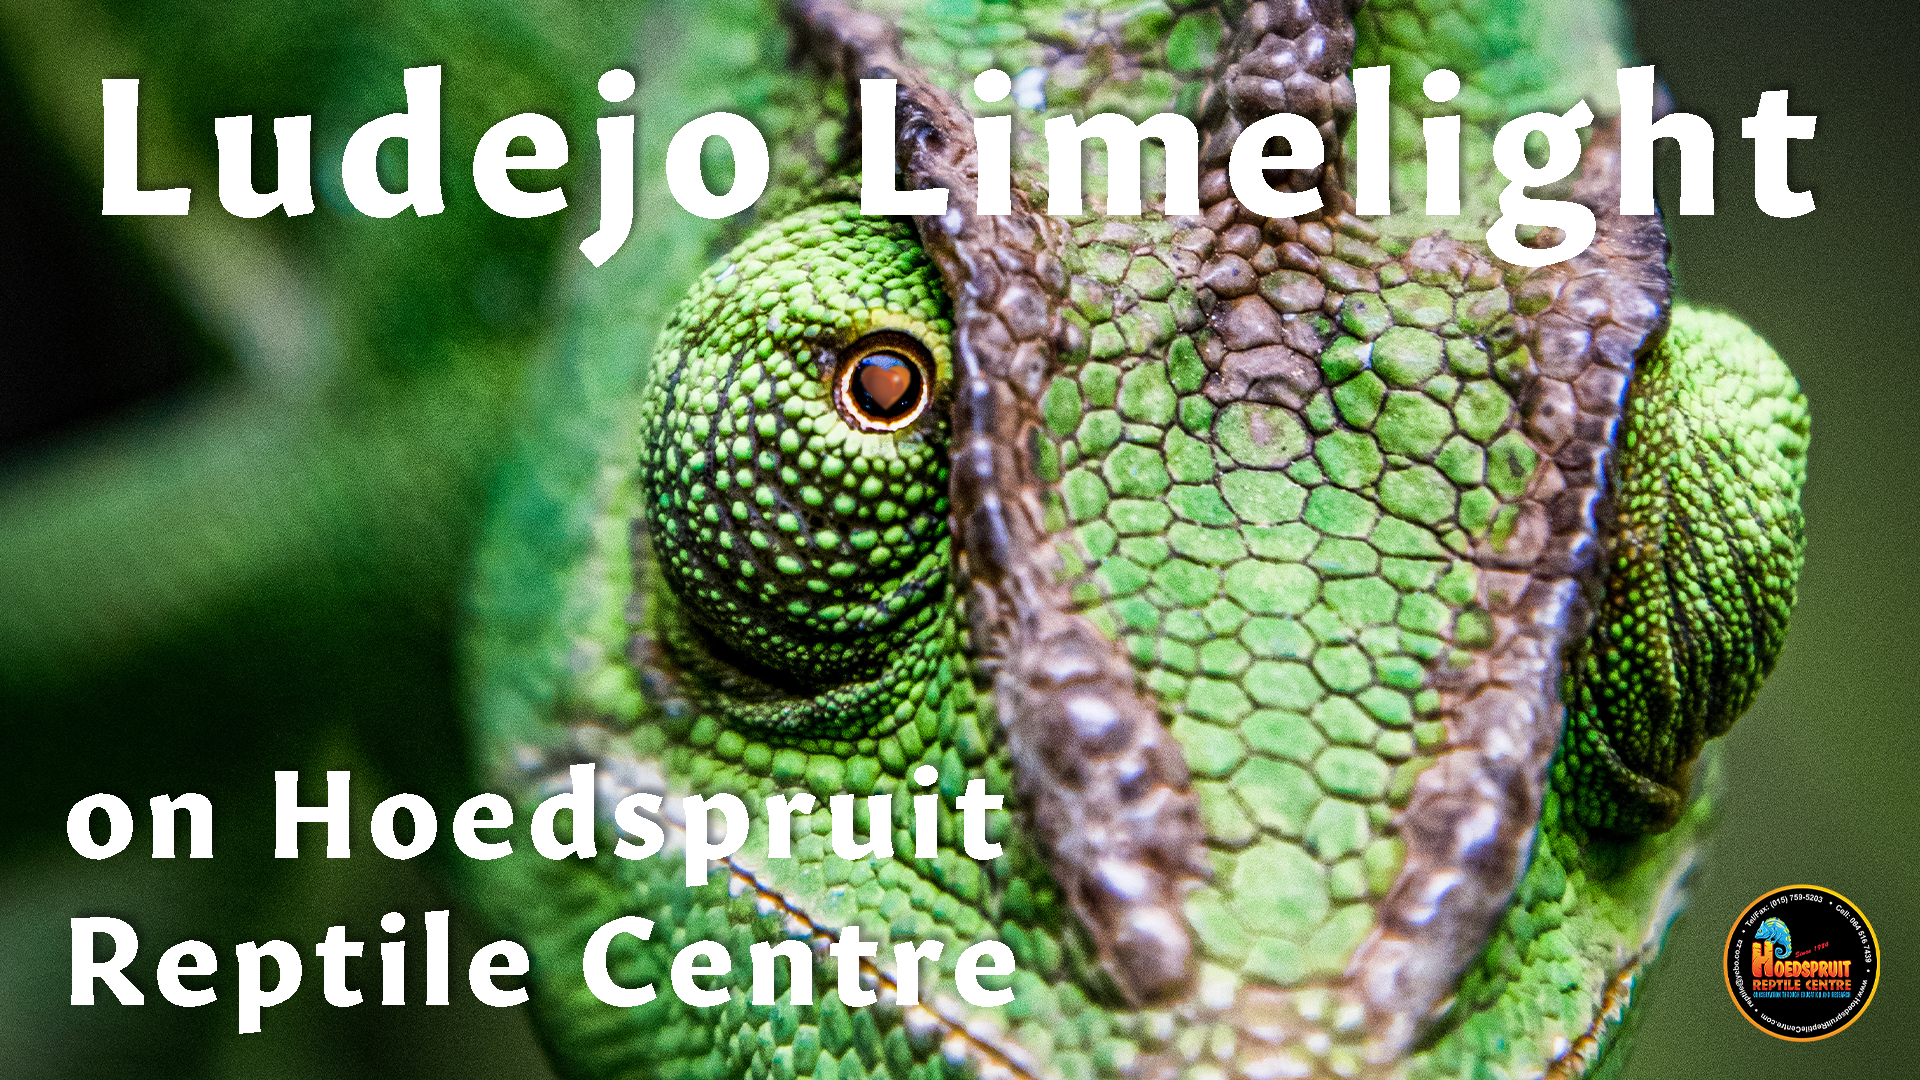 Hoedspruit Reptile Centre (HRC) is one of the oldest and most well-known reptile centres in Africa - This is their cameleon